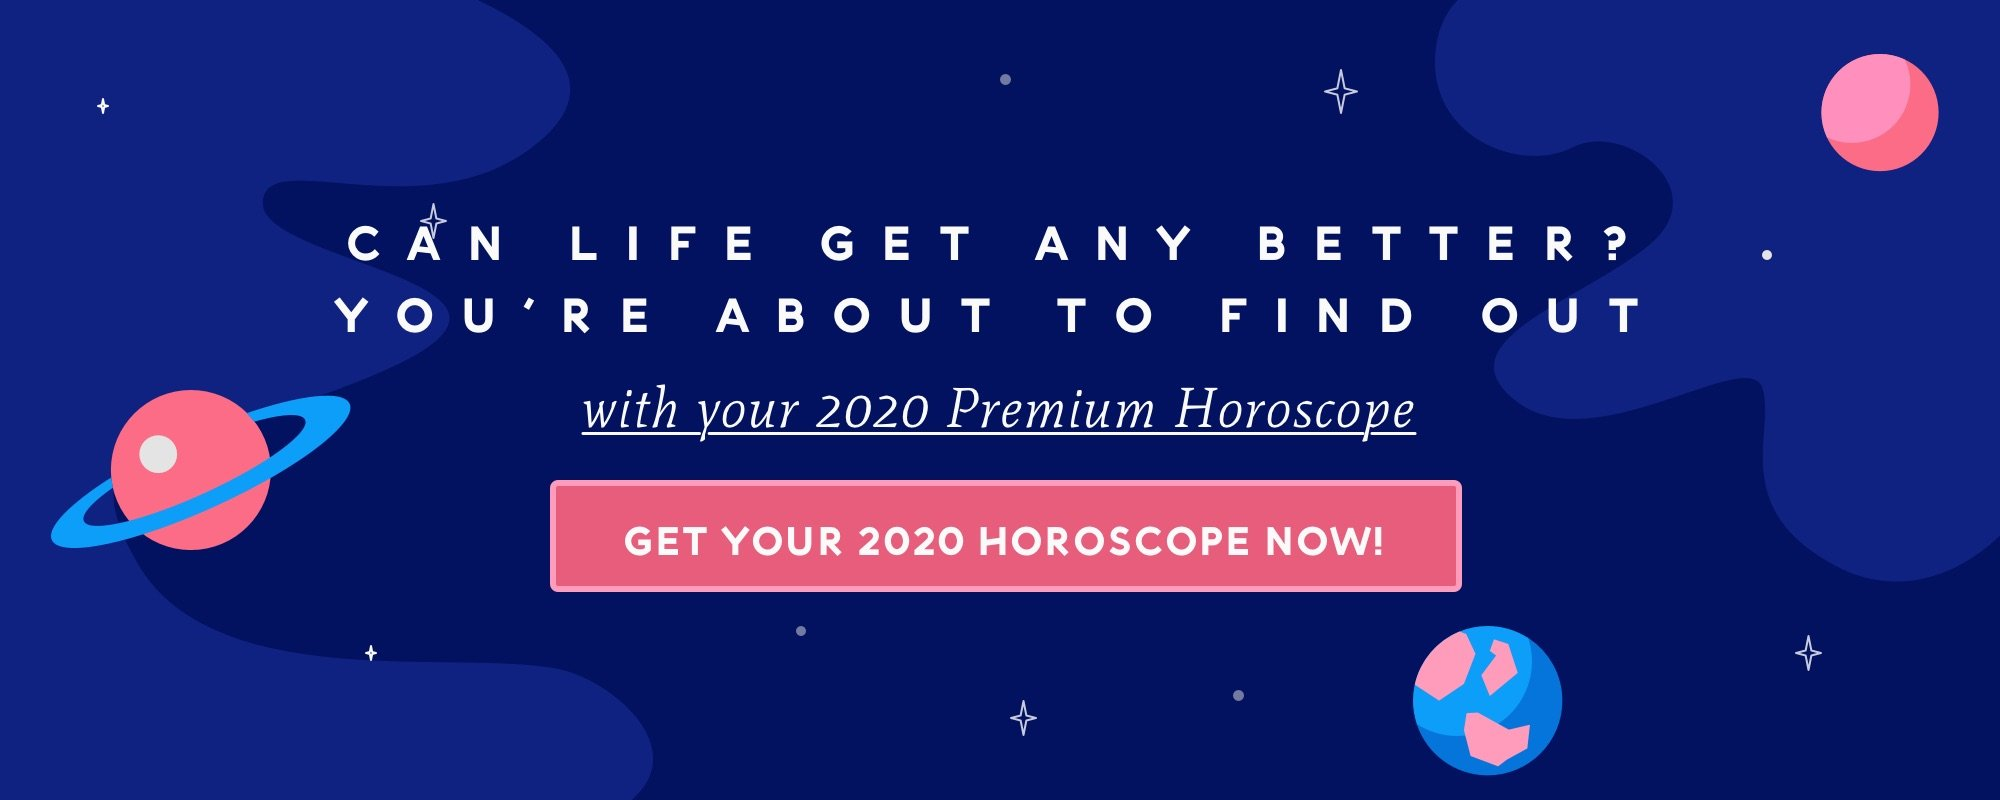 Get your 2020 Horoscope!